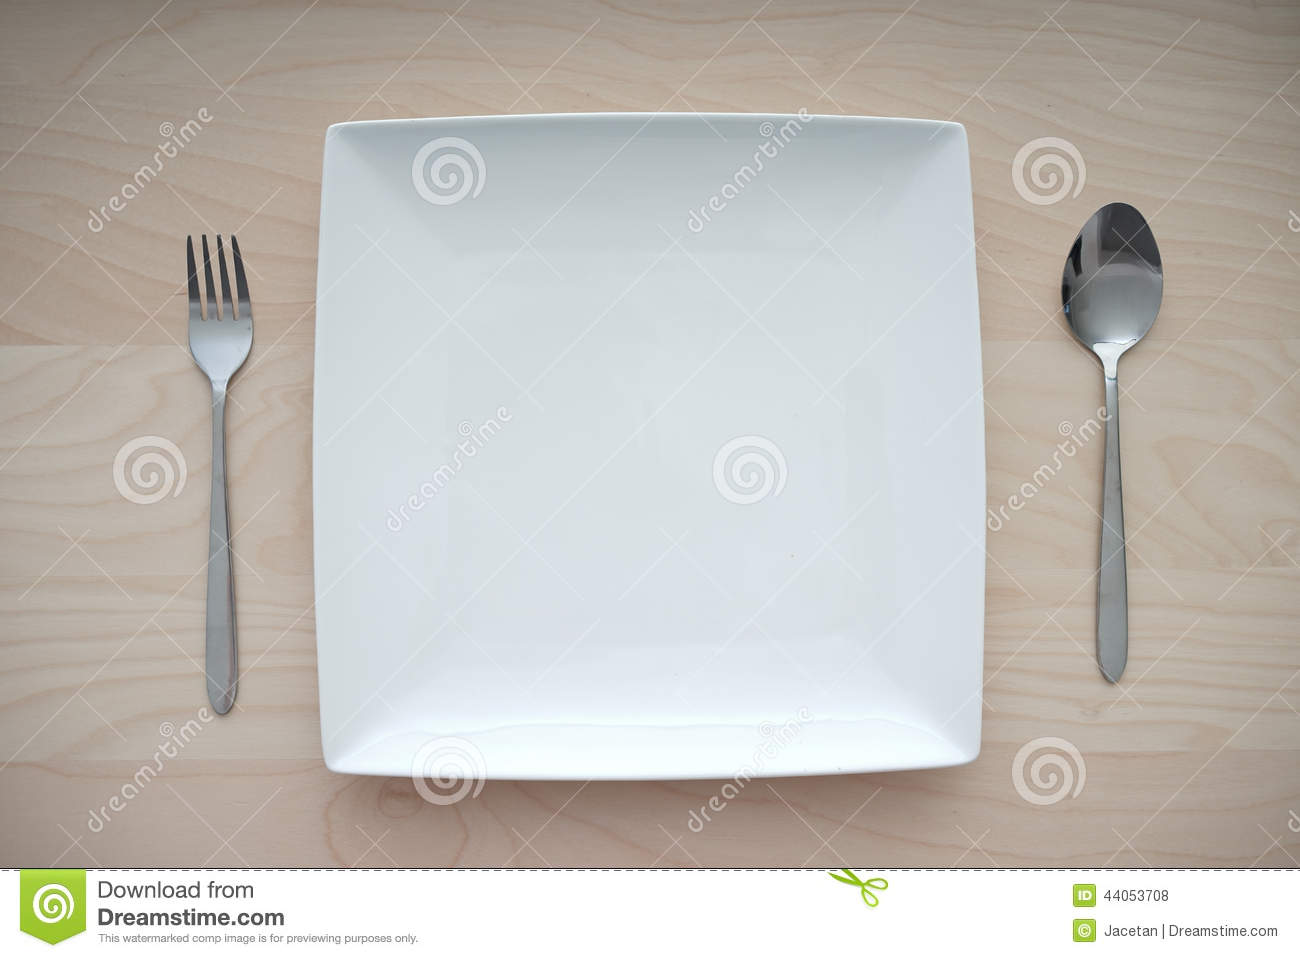 Empty square plate on wooden table with fork and spoon for Table utensils